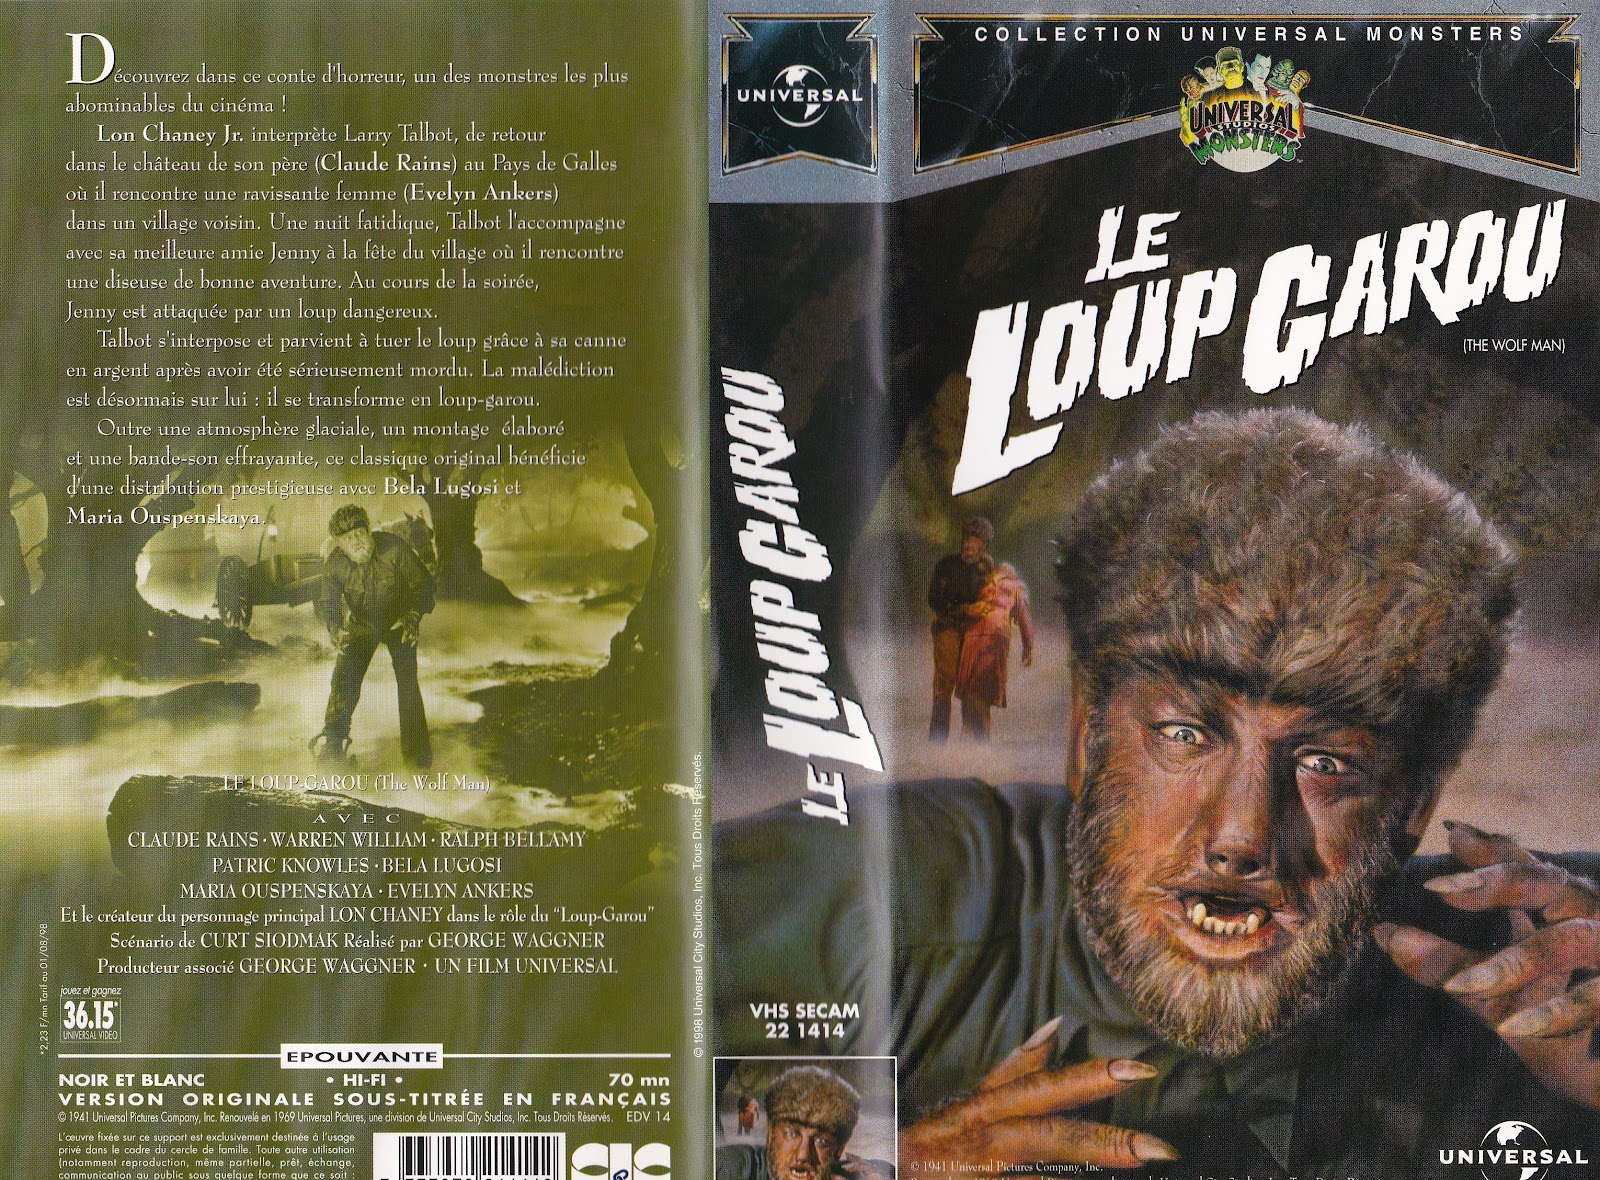 comparing le loupgarou and ol higue Csec english b poems a mother might wish ill on her child the ol' higue is implying that, again le loupgarou - literature notes.